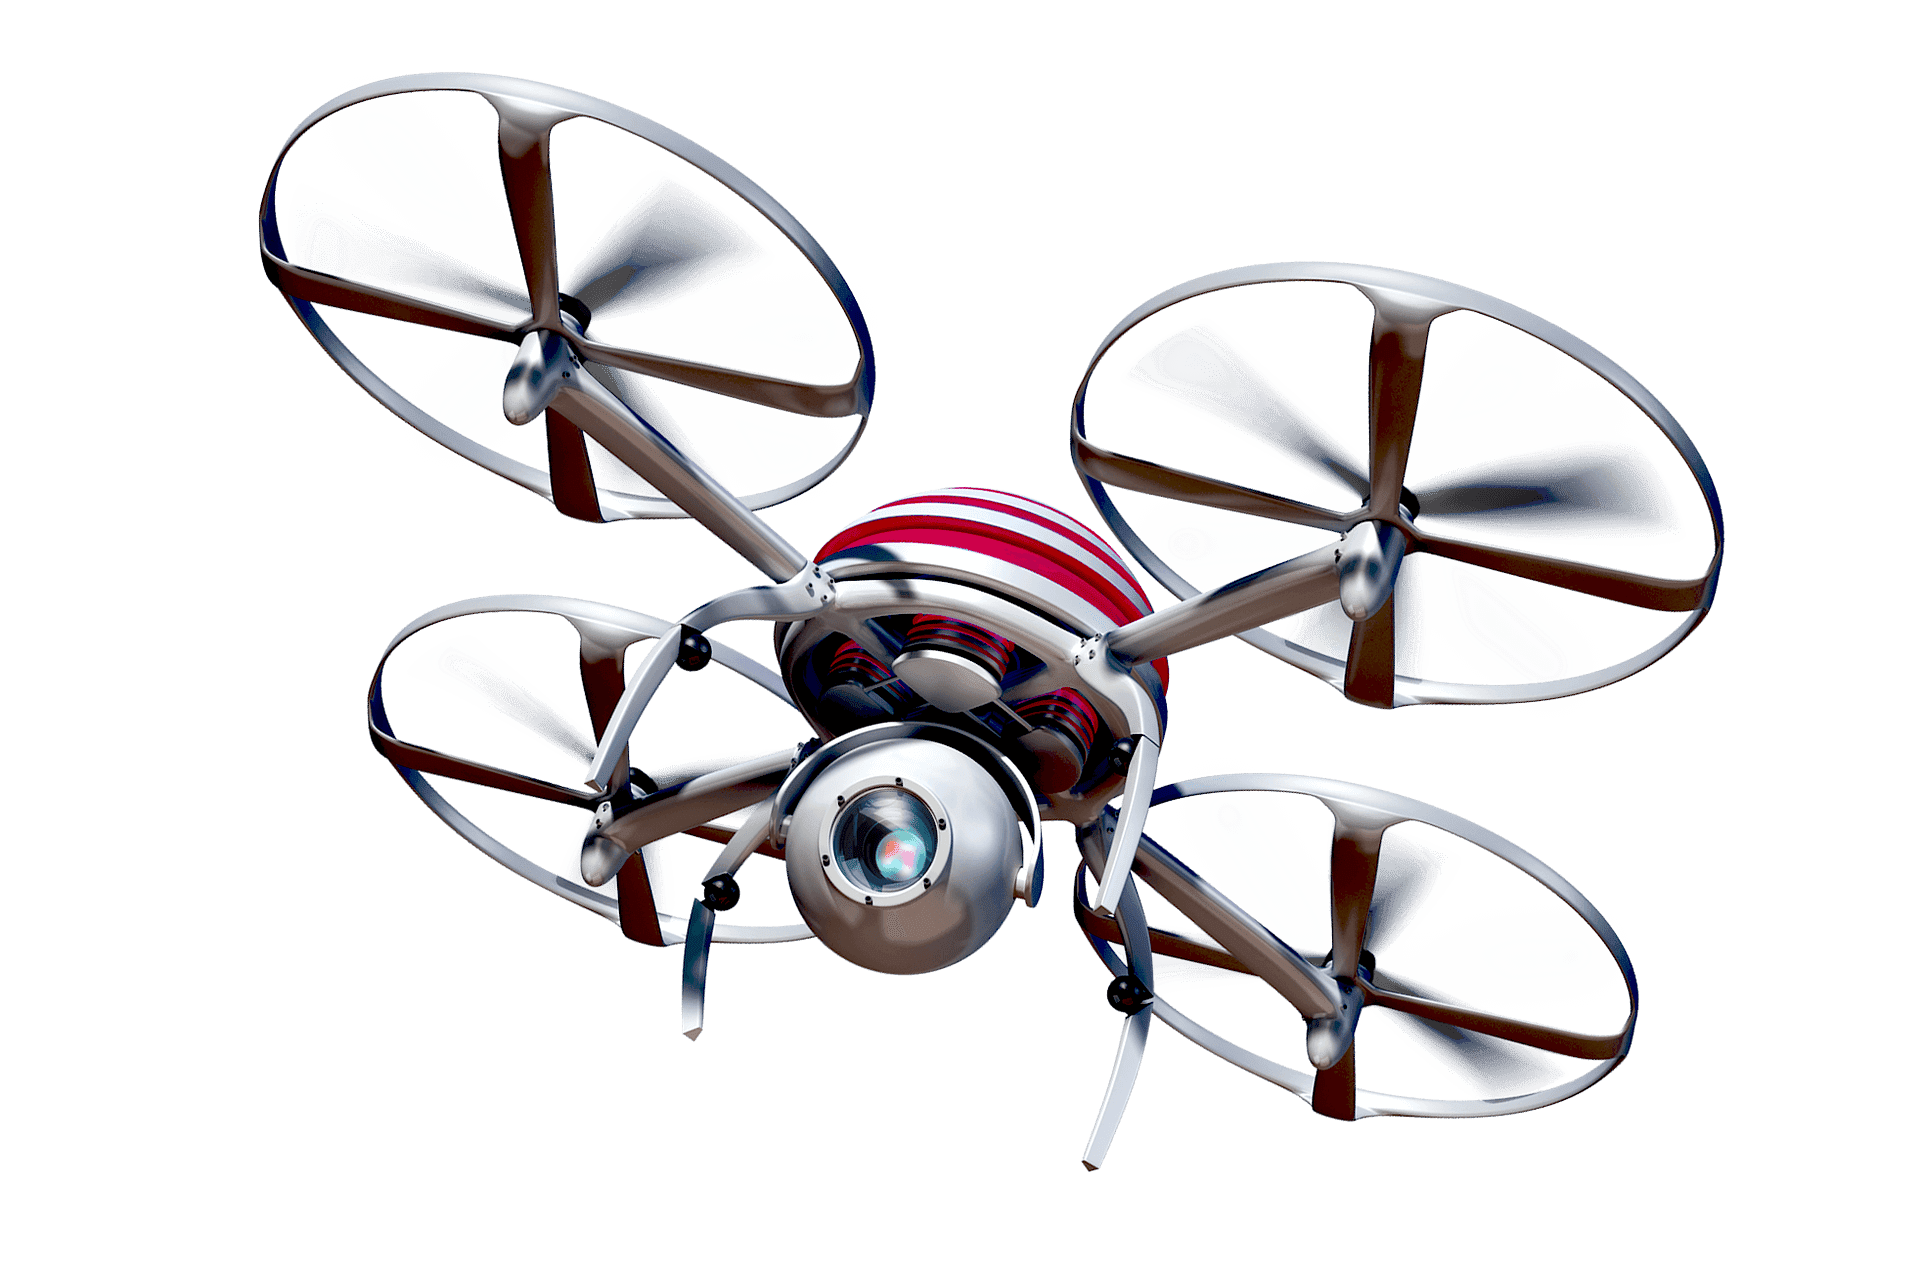 content/es-mx/images/repository/isc/2020/a-spy-drone-with-large-camera-lens.png